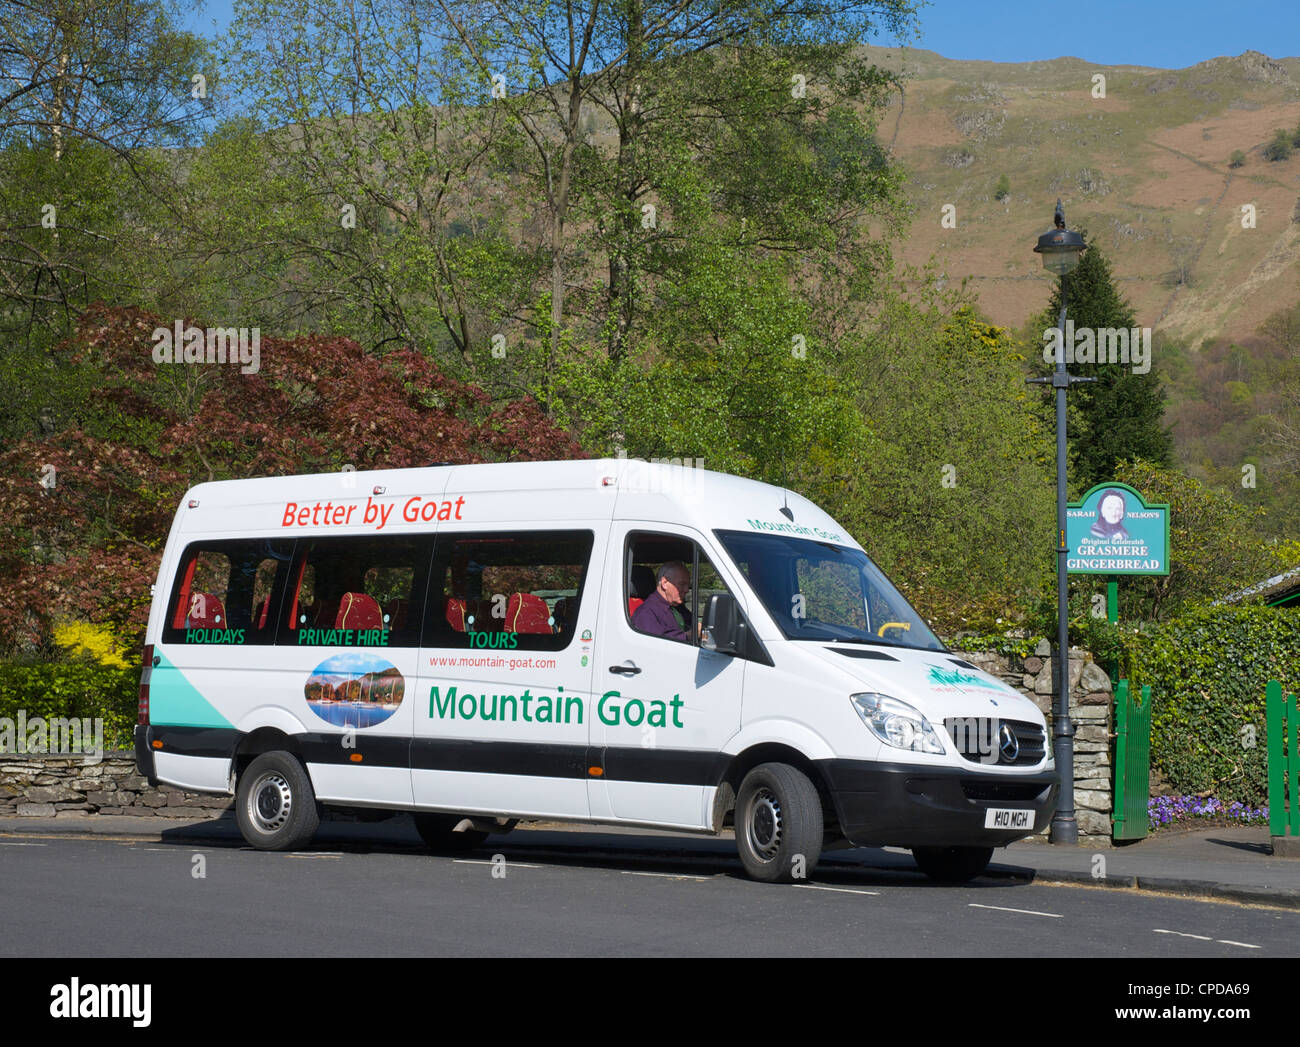 Mountain Goat minibus in the village of Grasmere, Lake District National Park, Cumbria, England UK - Stock Image